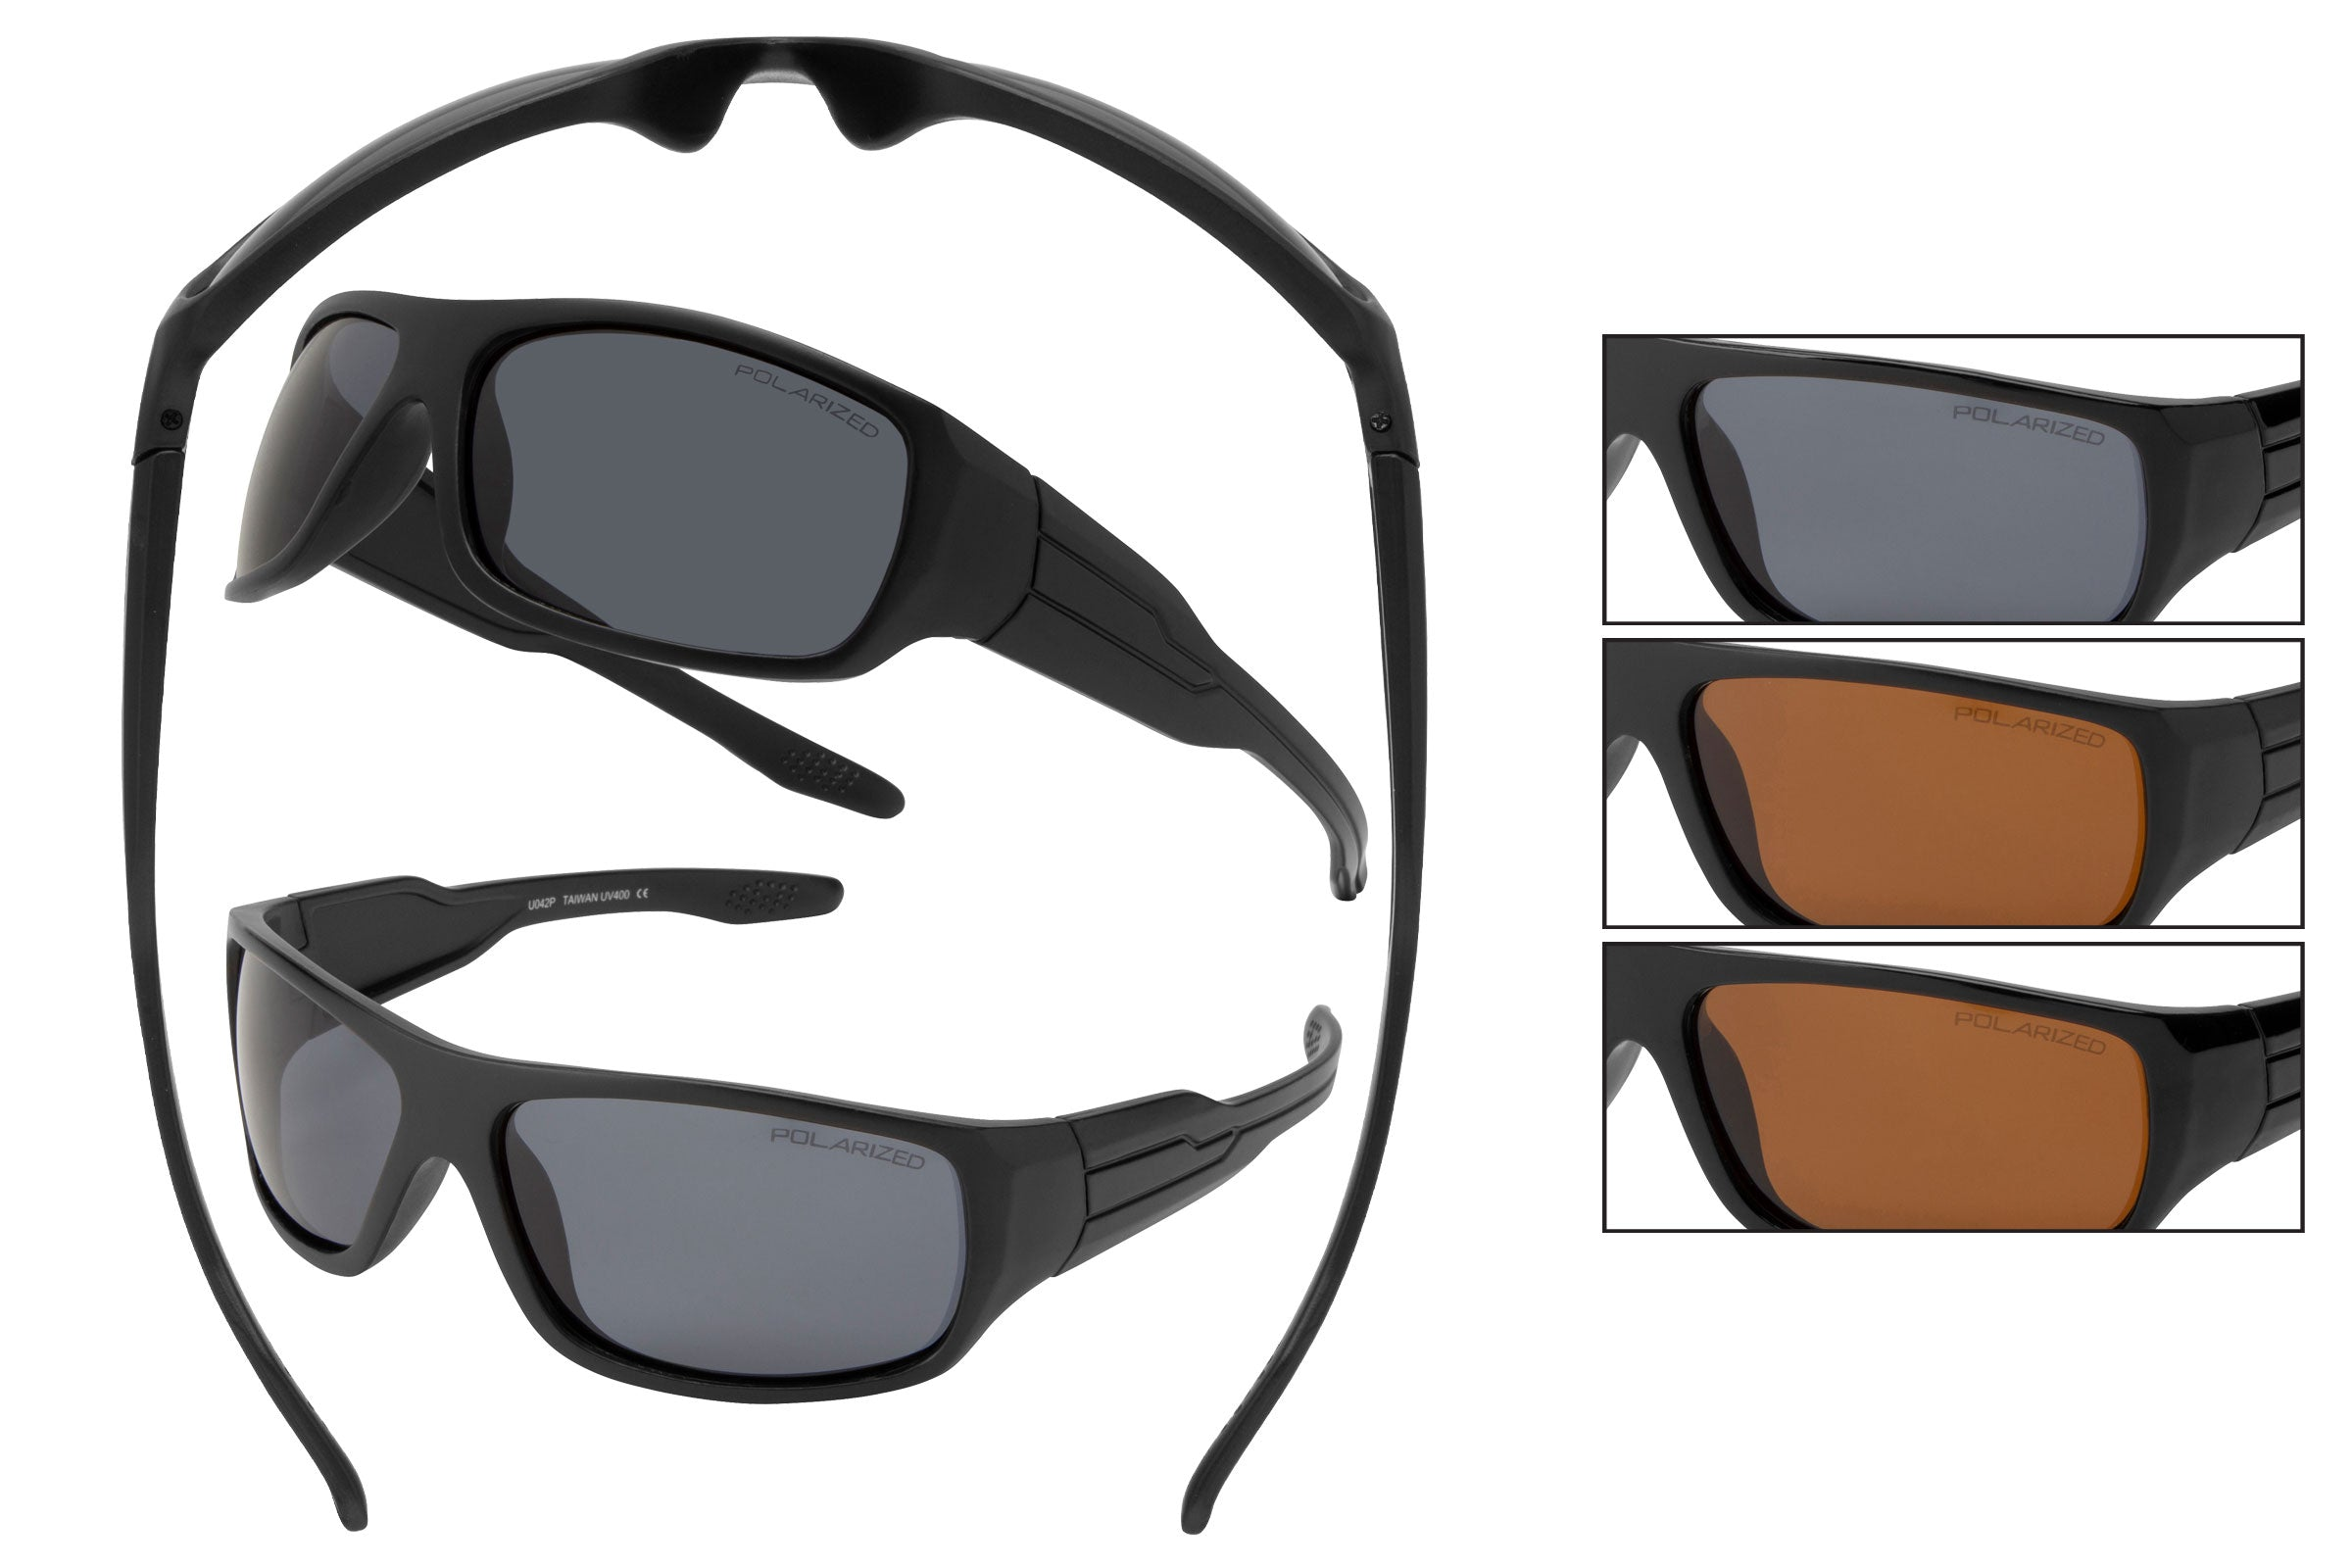 59133XL-POL - VertXL Extra Large Polarized Sport Wrap Sunglasses